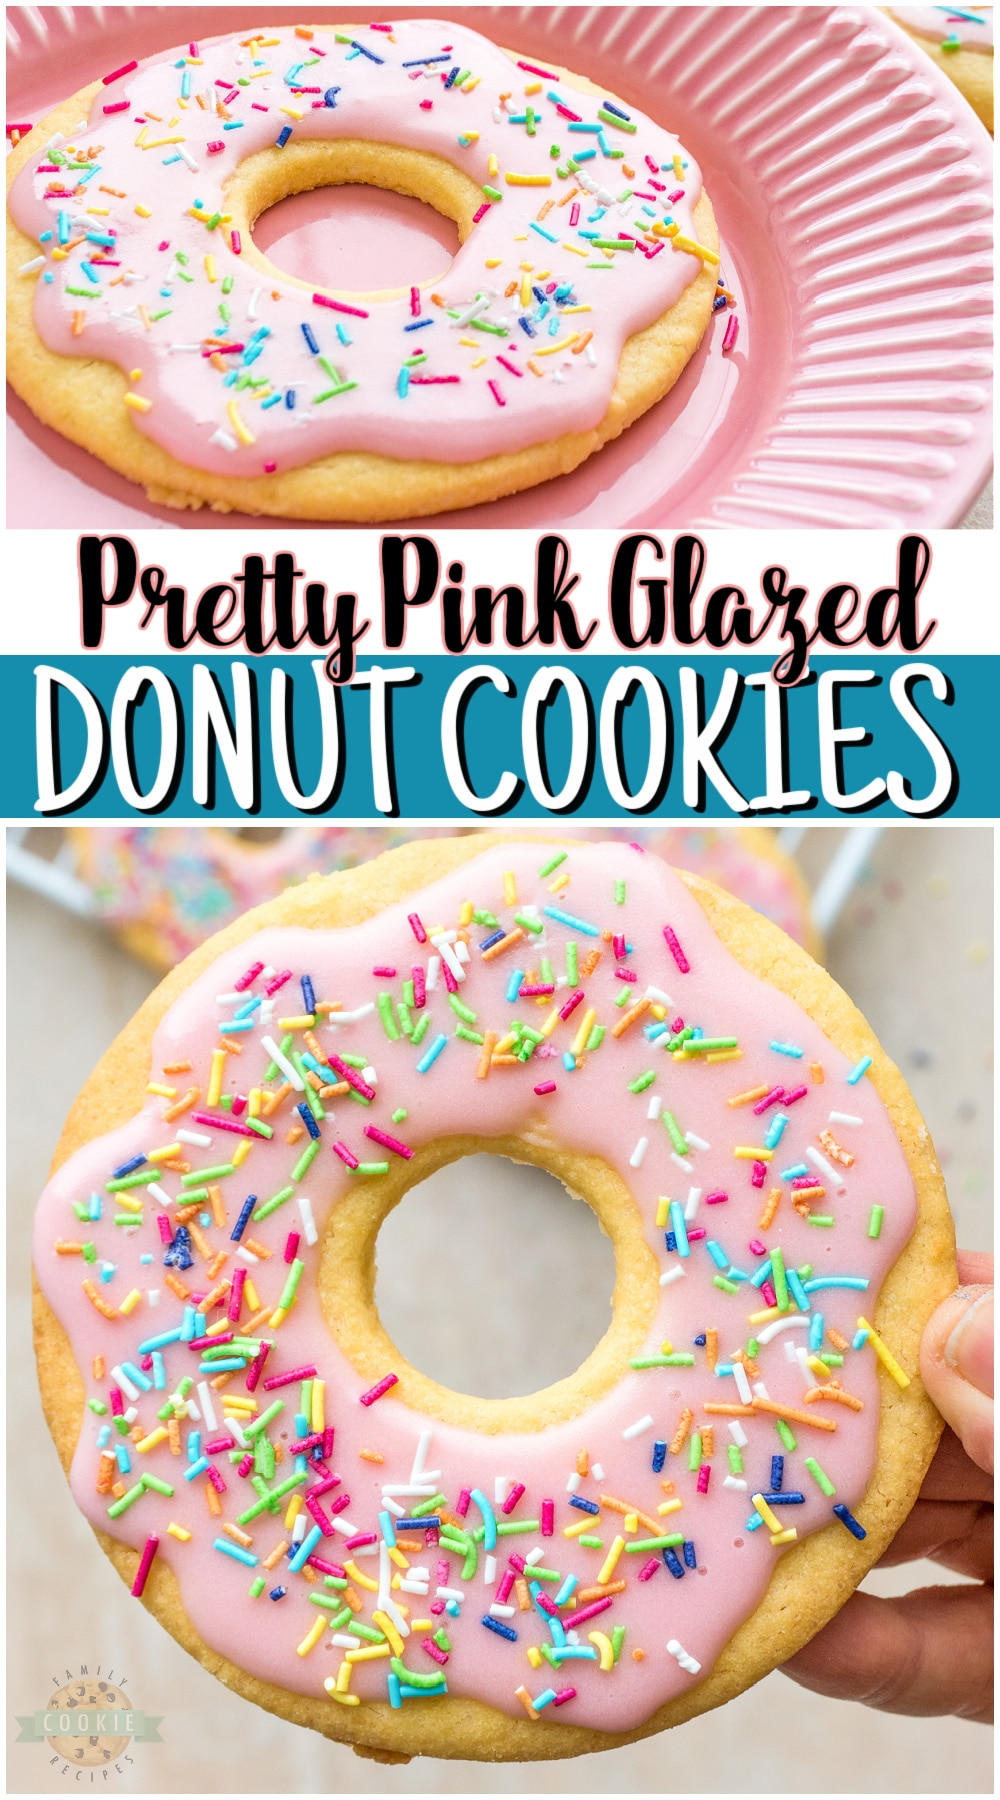 Pink donut cookies are cute sugar cookies frosted with pink glaze to look just like Sprinkled Pink Donuts! Cute donut cookies perfect for birthday parties, bridal showers, baby showers or any type of party! via @familycookierecipes